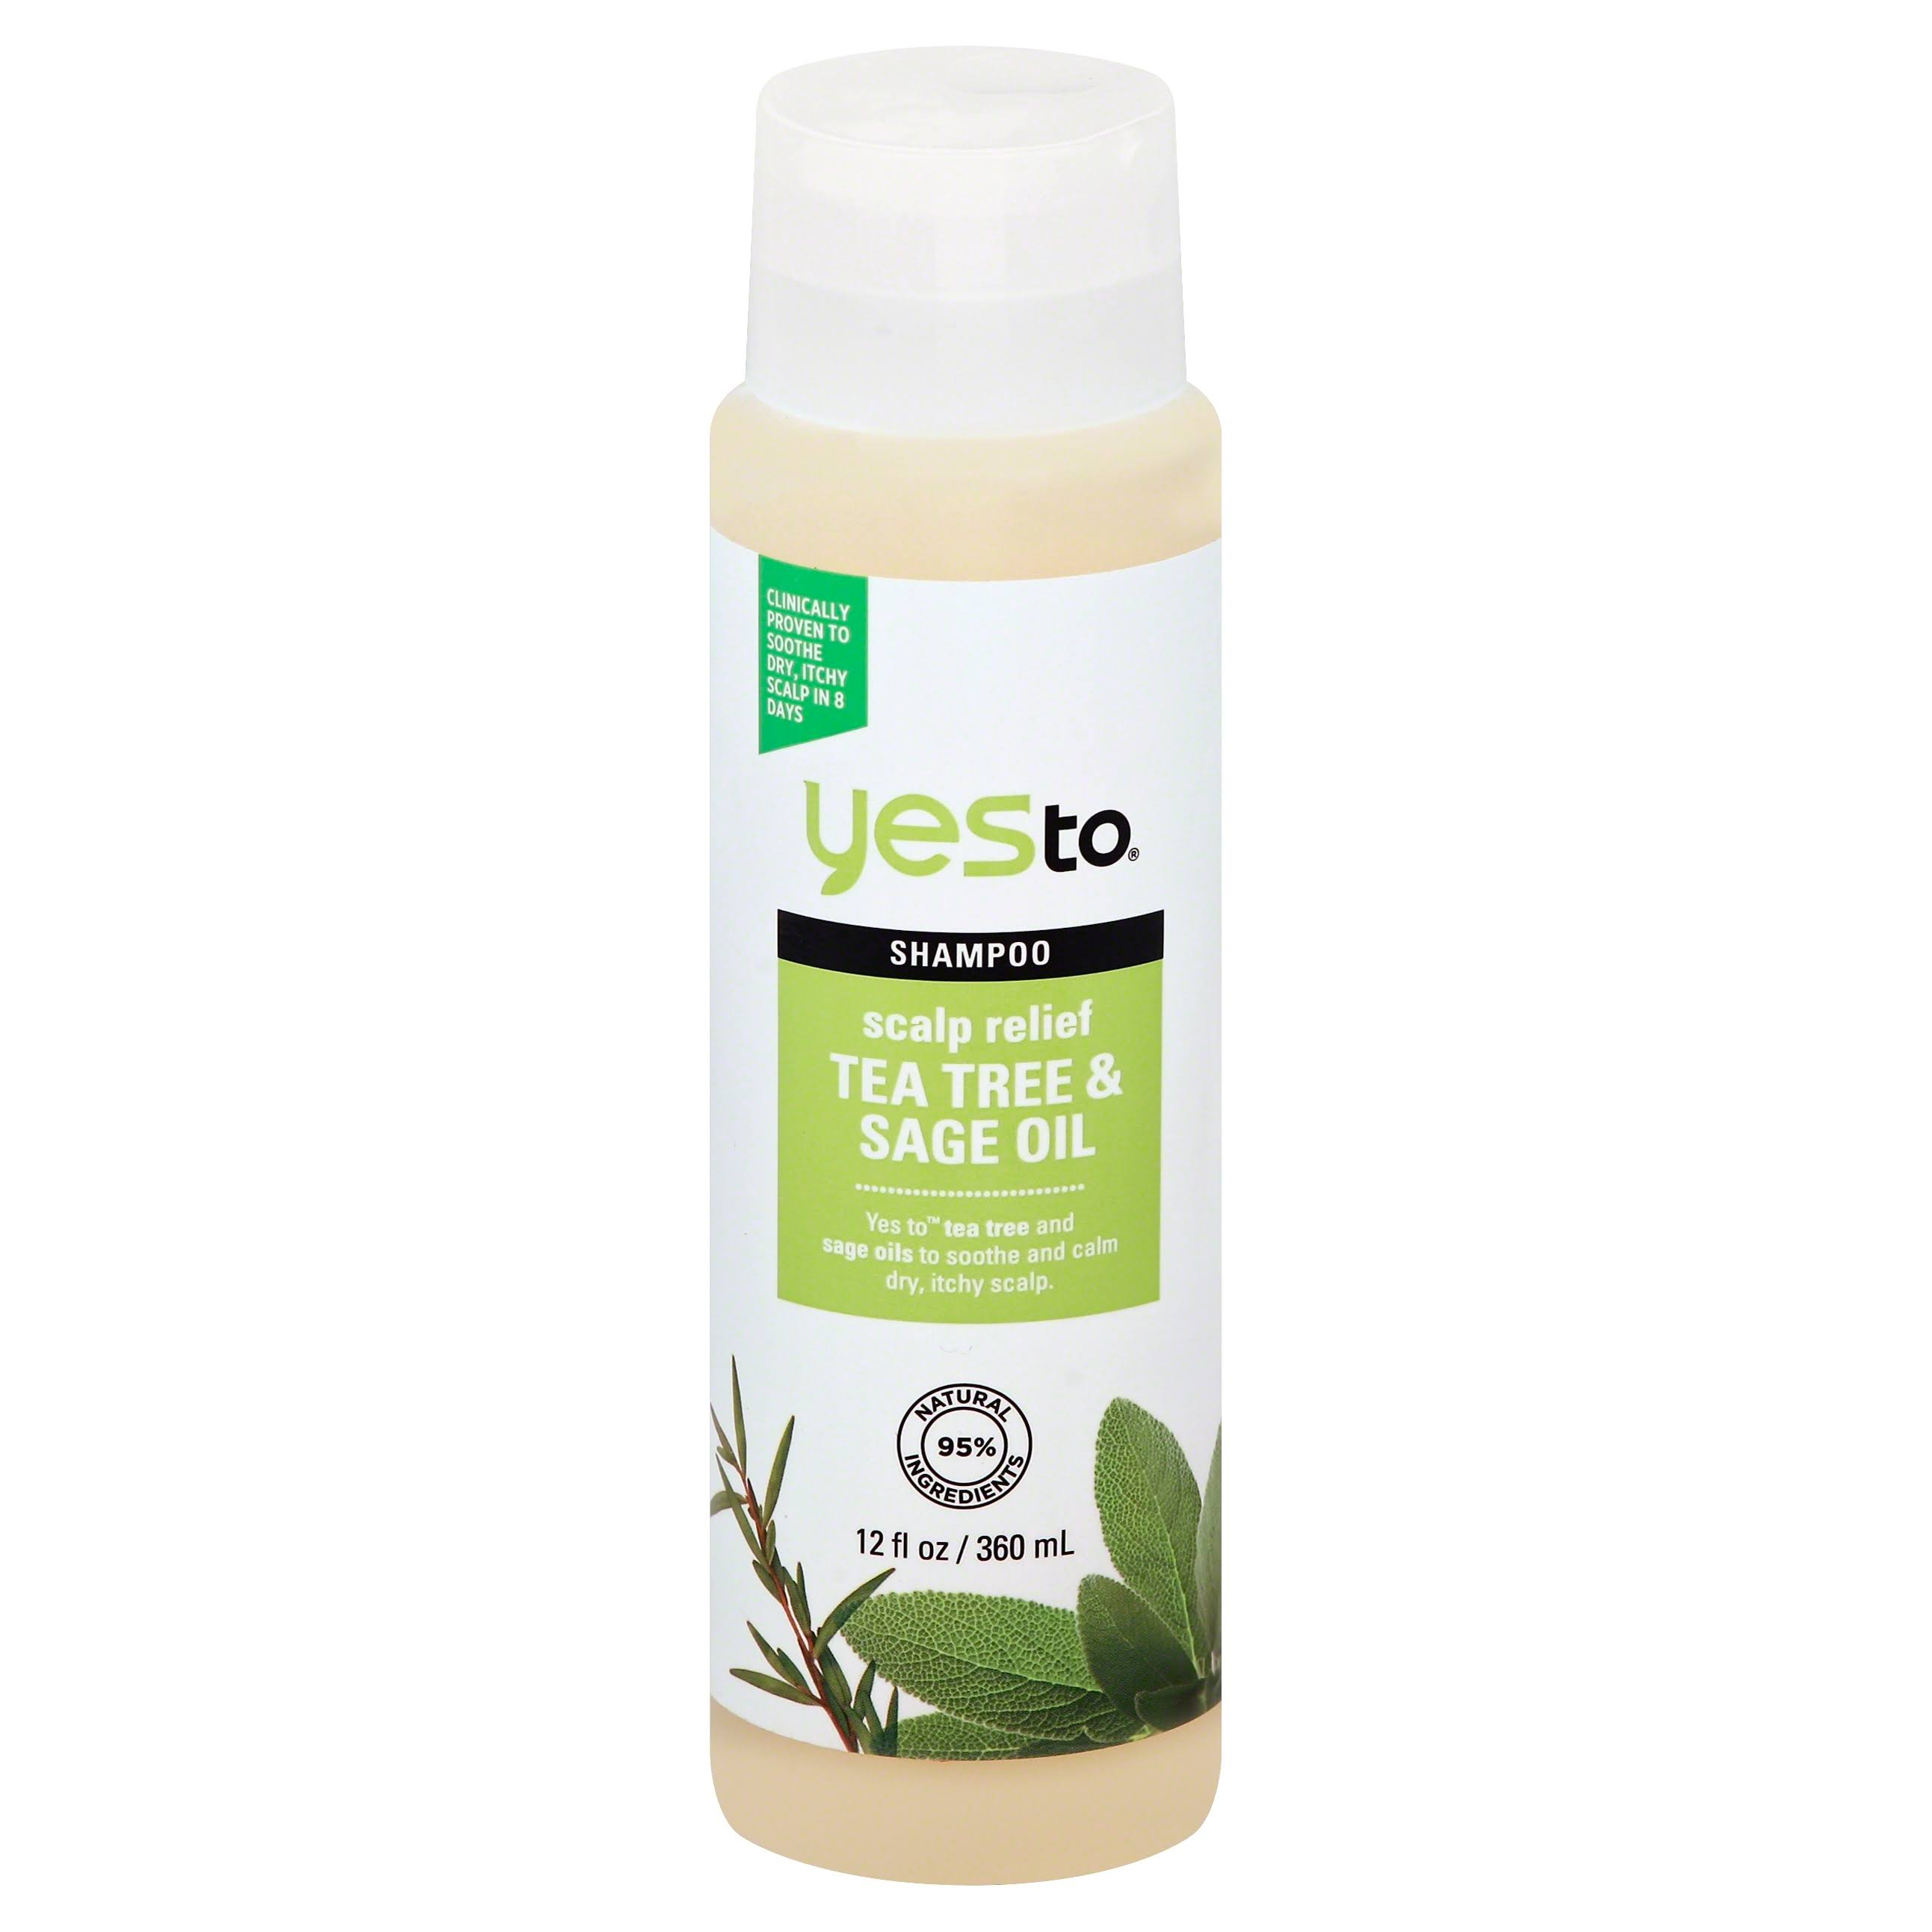 Yes To Tea Tree & Sage Oil Scalp Relief Shampoo - 12 fl oz bottle